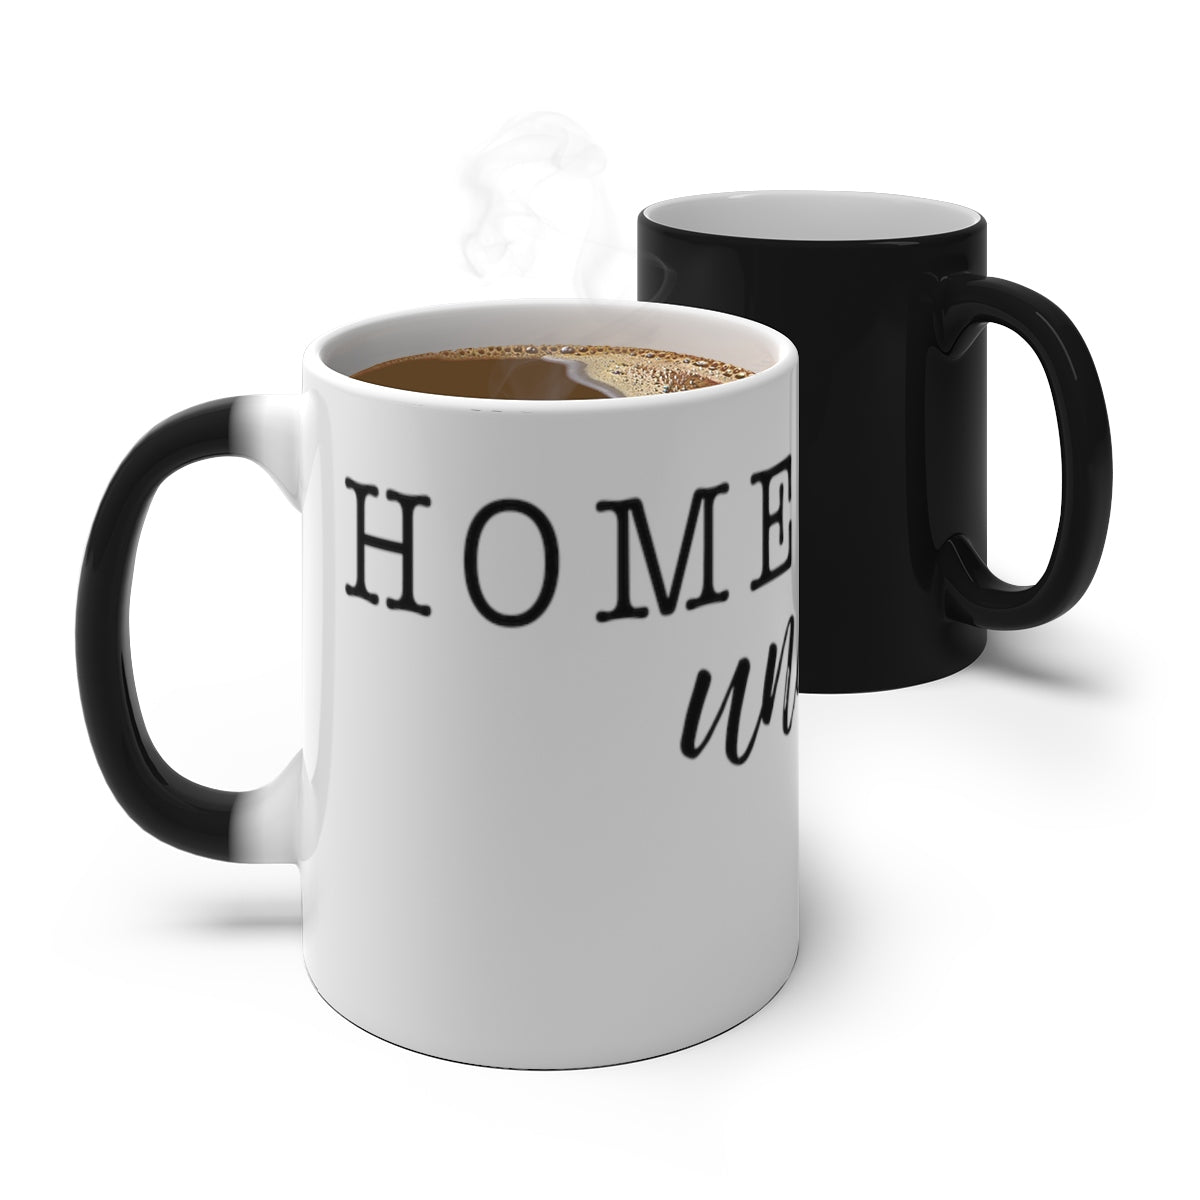 Homeowner Under 30 Color Changing Coffee Mug